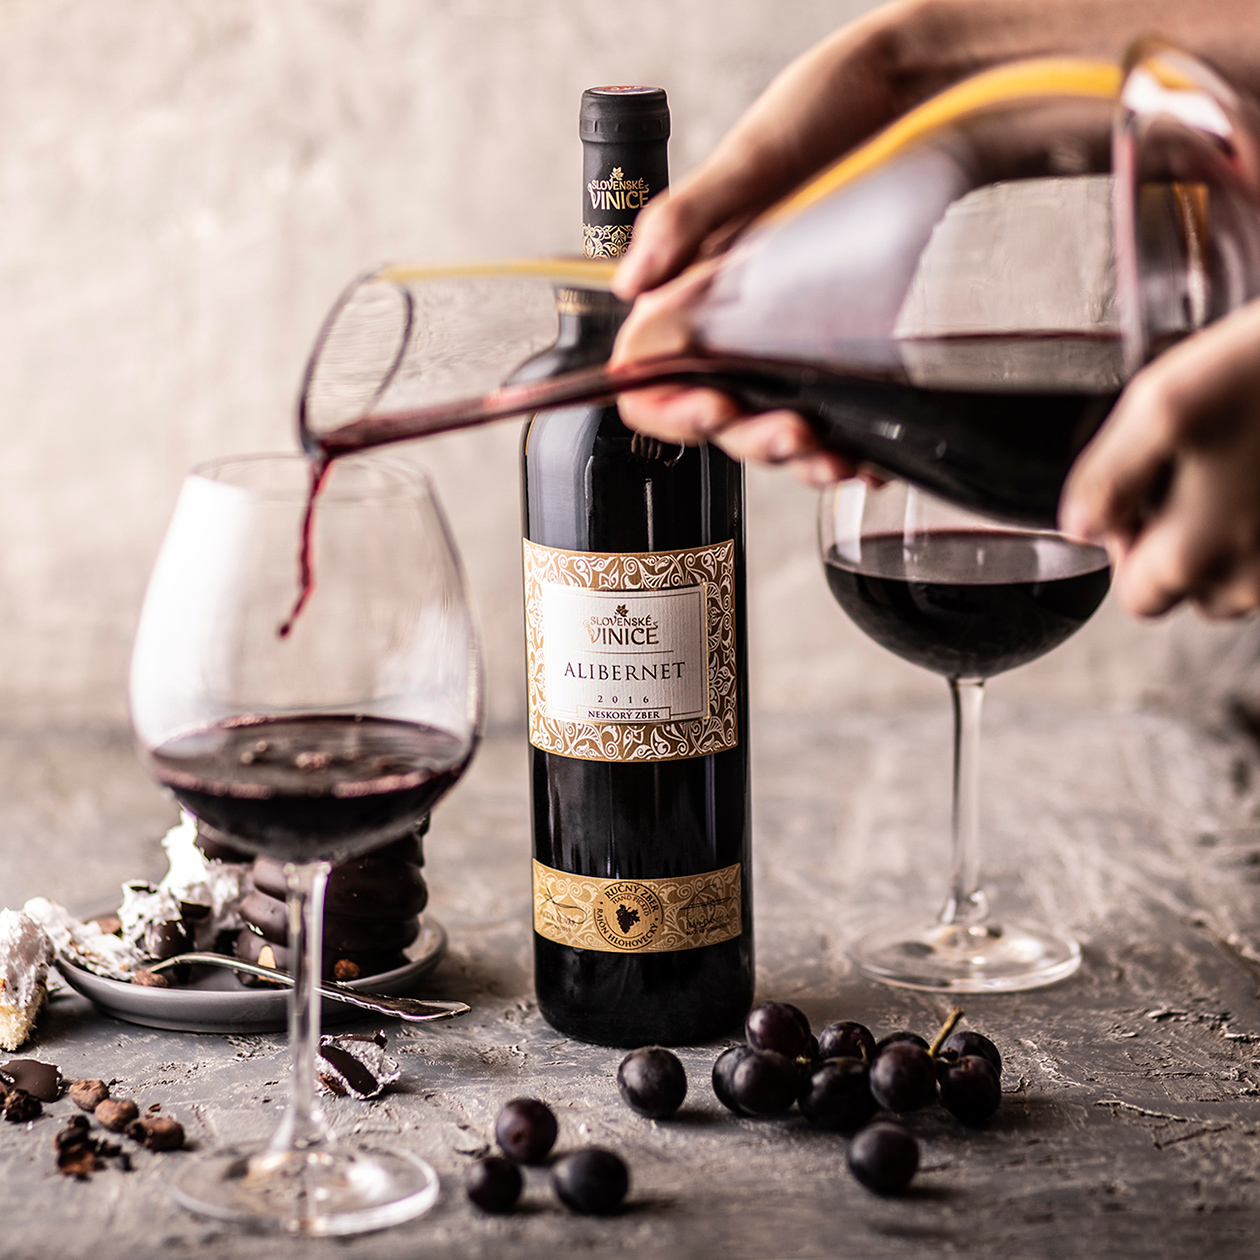 photography foodstyling wine slovenske vinice